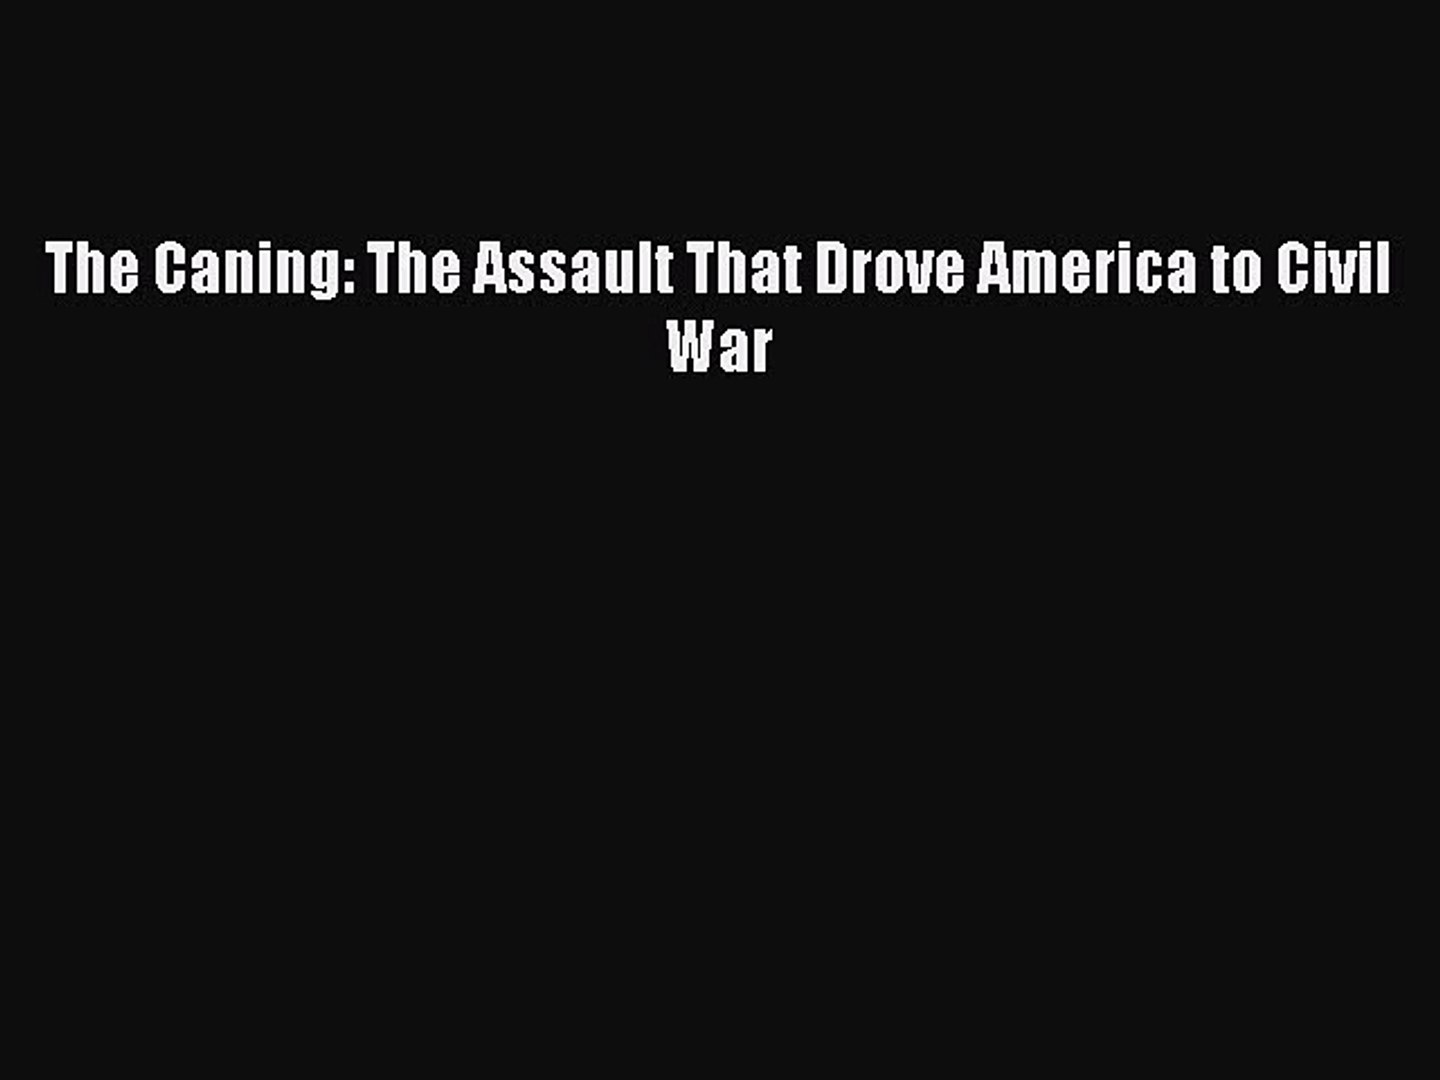 Download The Caning: The Assault That Drove America to Civil War Ebook Free